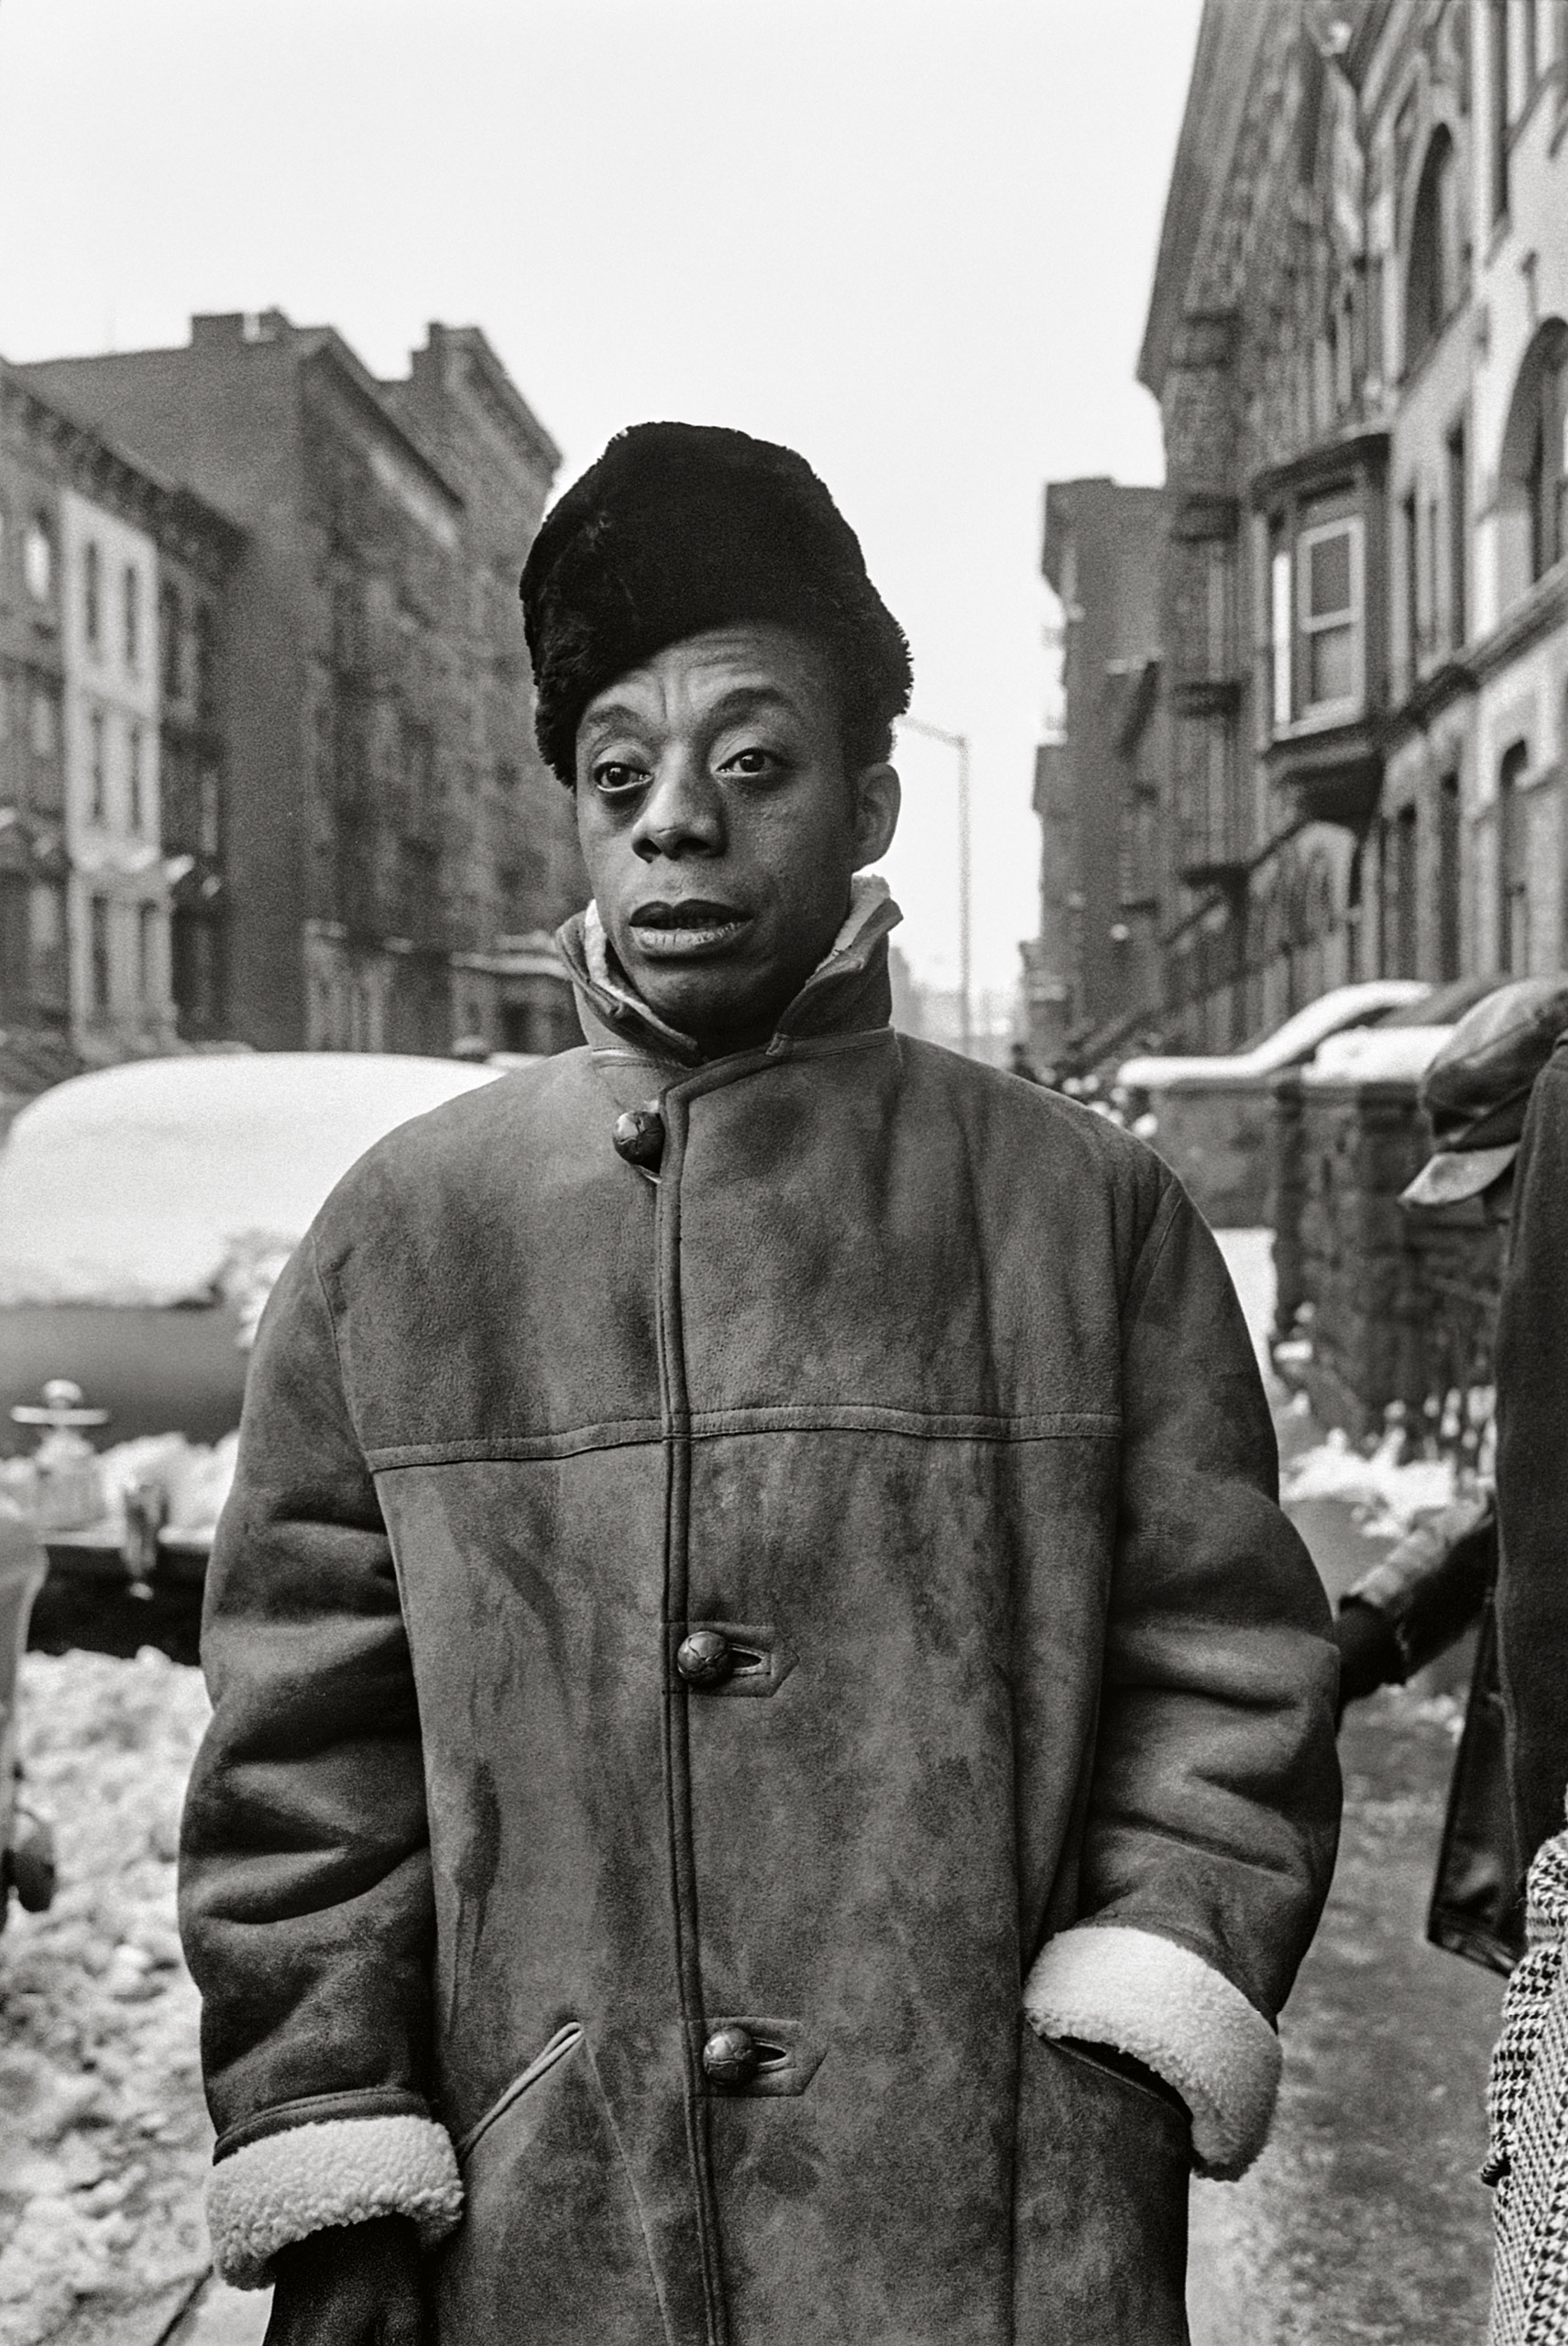 Previously Published.                               James Baldwin was born in Harlem Hospital on August 2, 1924, and grew up in the urban North. After Schapiro read                               his story in The New Yorker, he knew he                               had to photograph the author, and convinced LIFE magazine to run a major story on him. They started in Harlem before continuing on to the South.